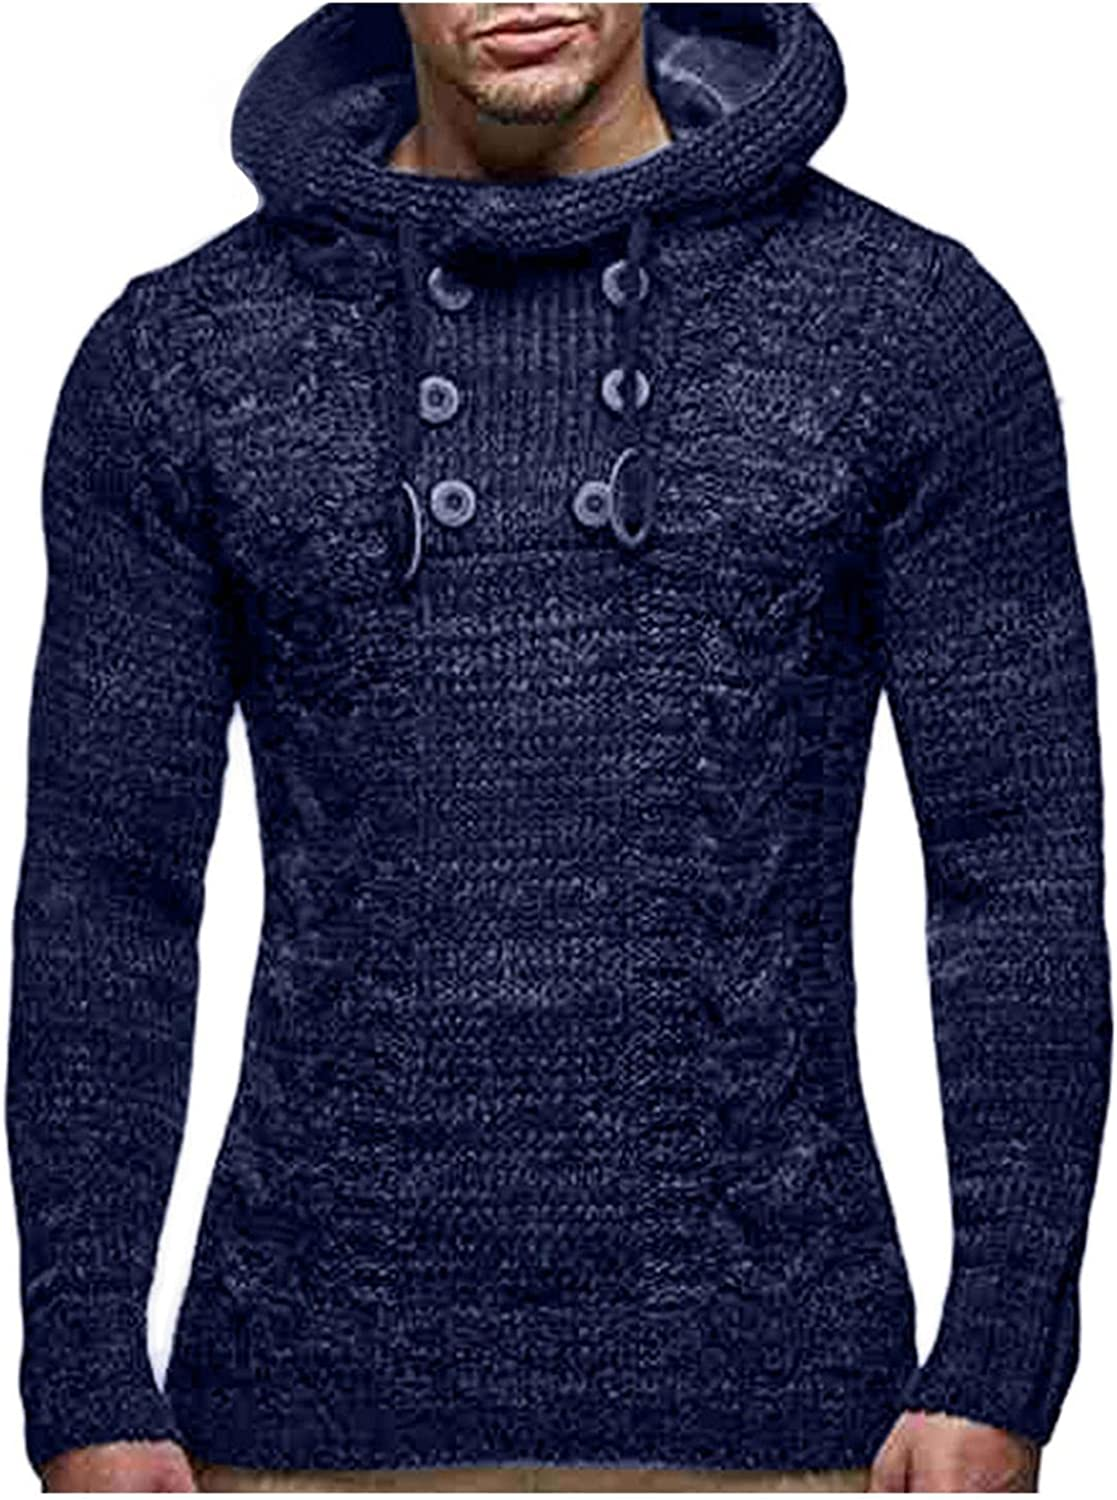 LEIYAN Mens Casual Hoodie Pullover Long Sleeve Turtleneck Loose Fit Cable Knit Thermal Sweater Knitwear